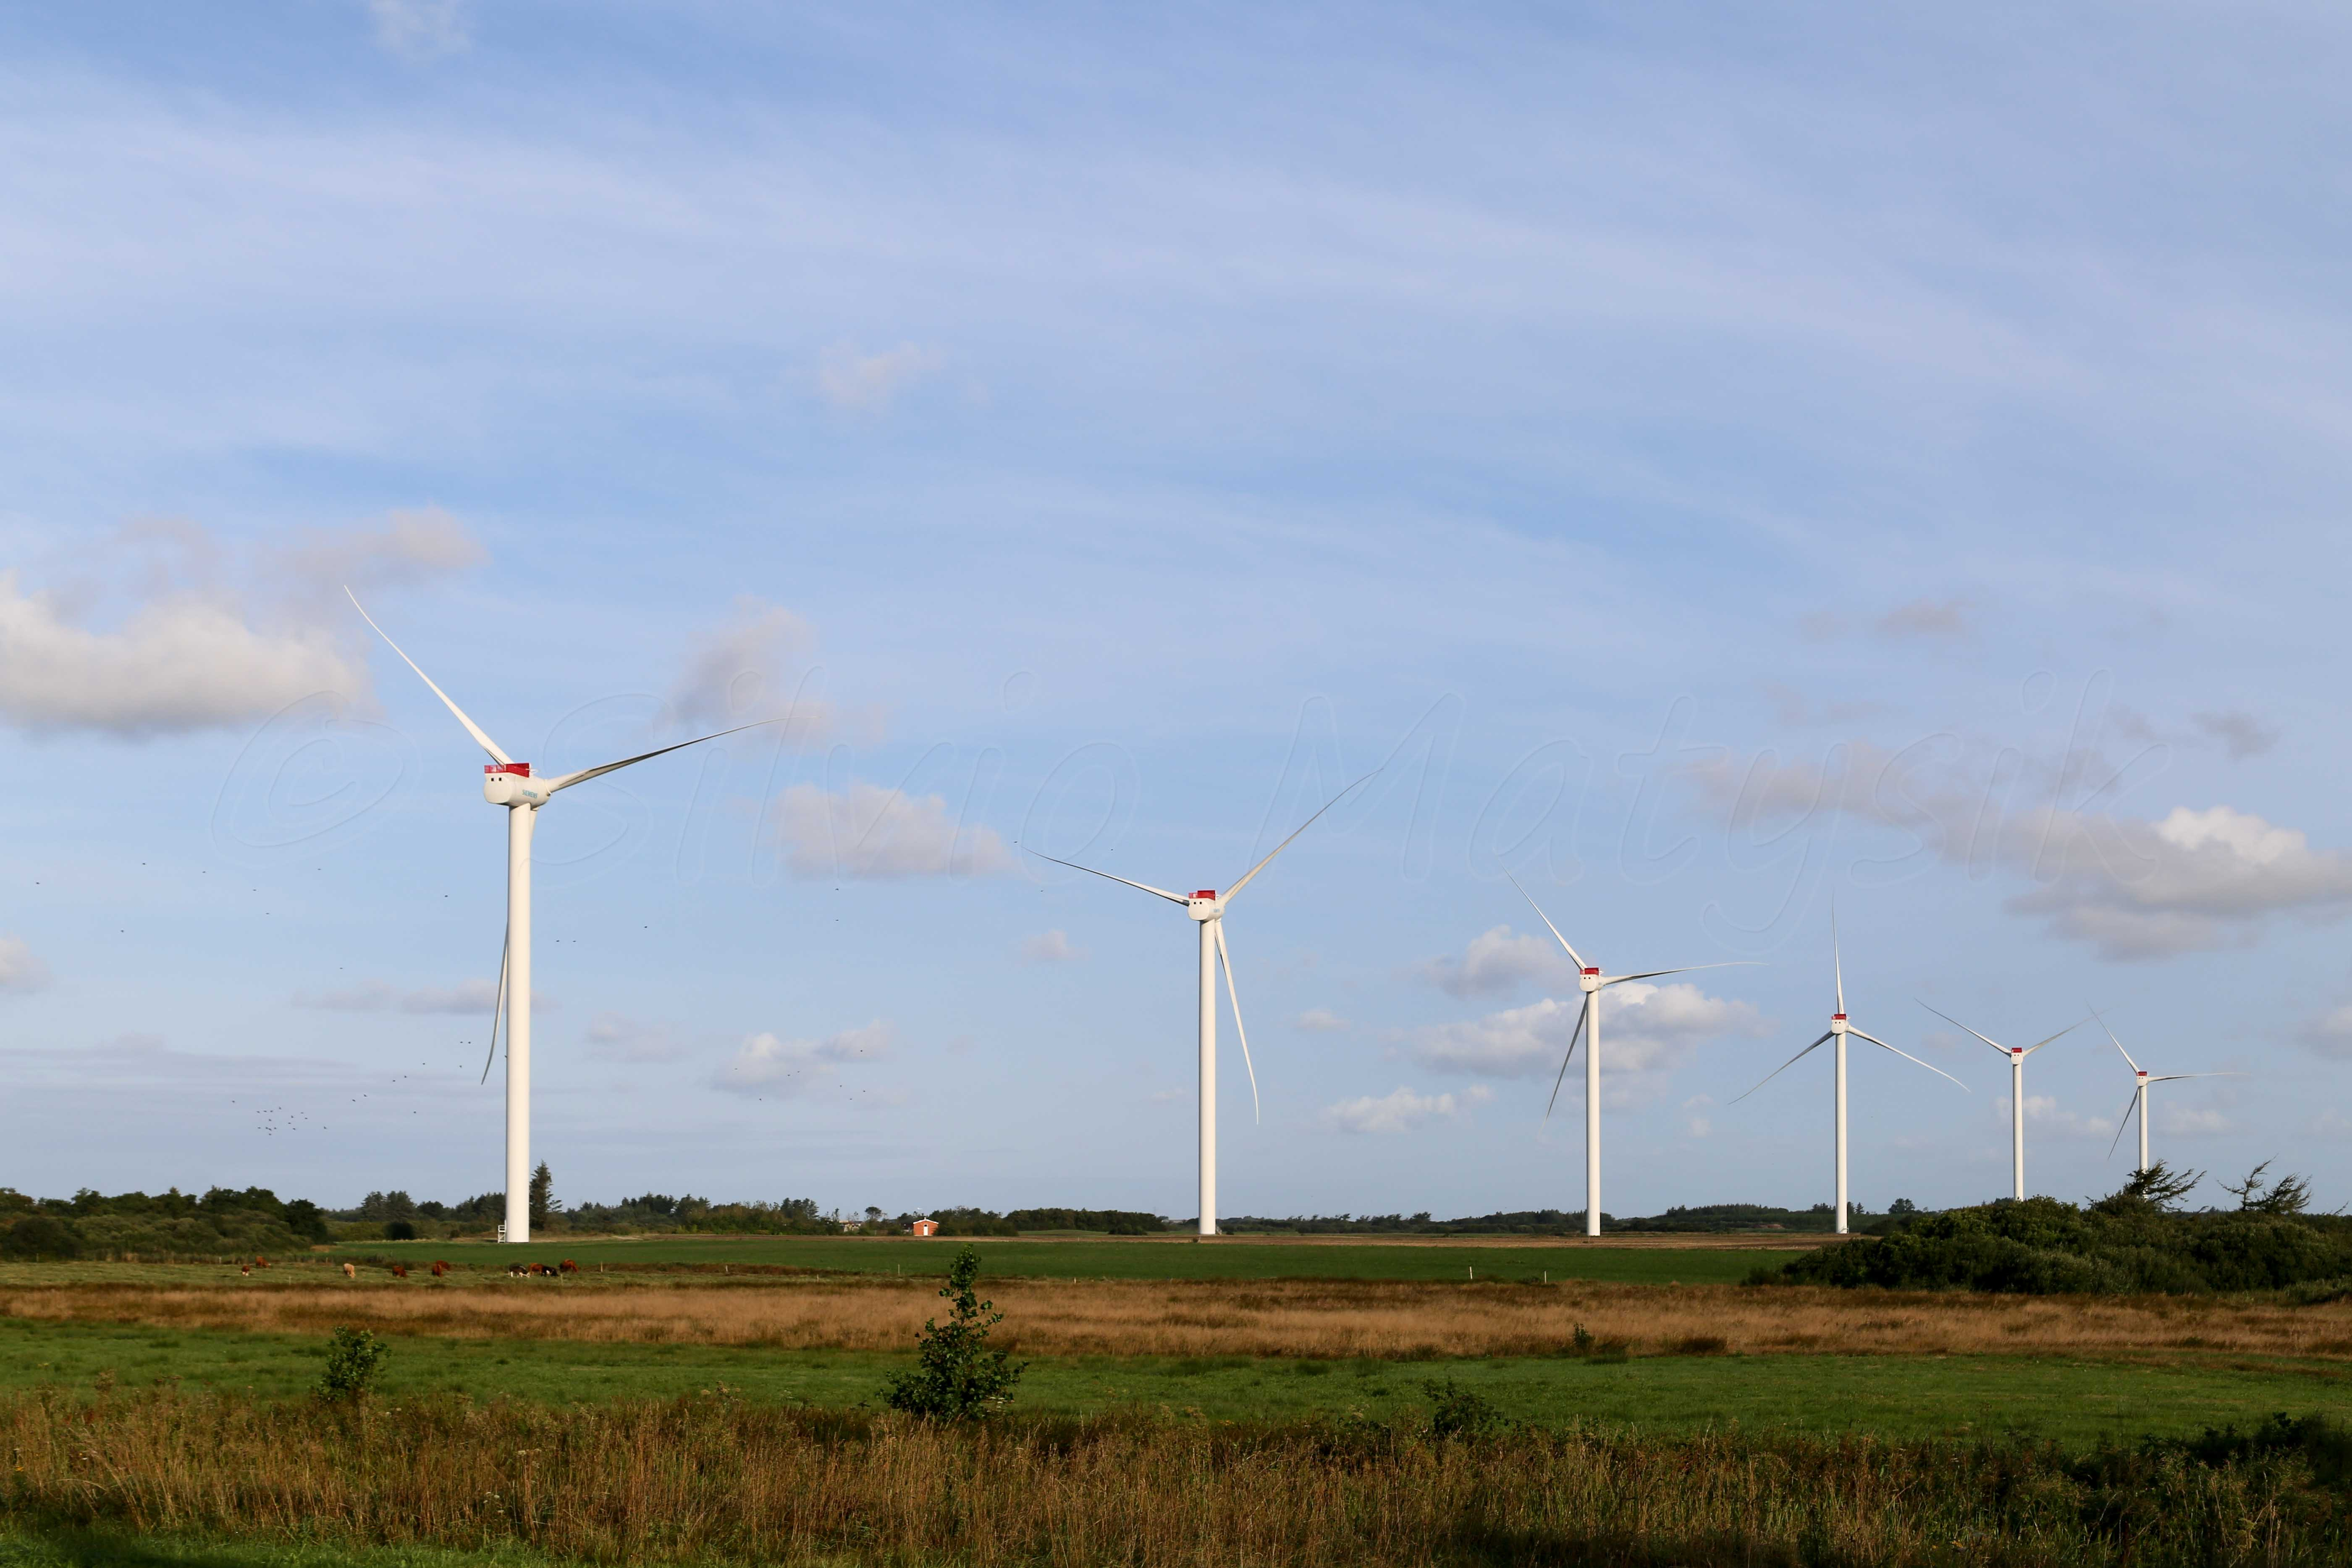 Welcome To Wind Turbine Modelscom Turbines For Electricity Generation Come In All Sizes And They The 20 Last